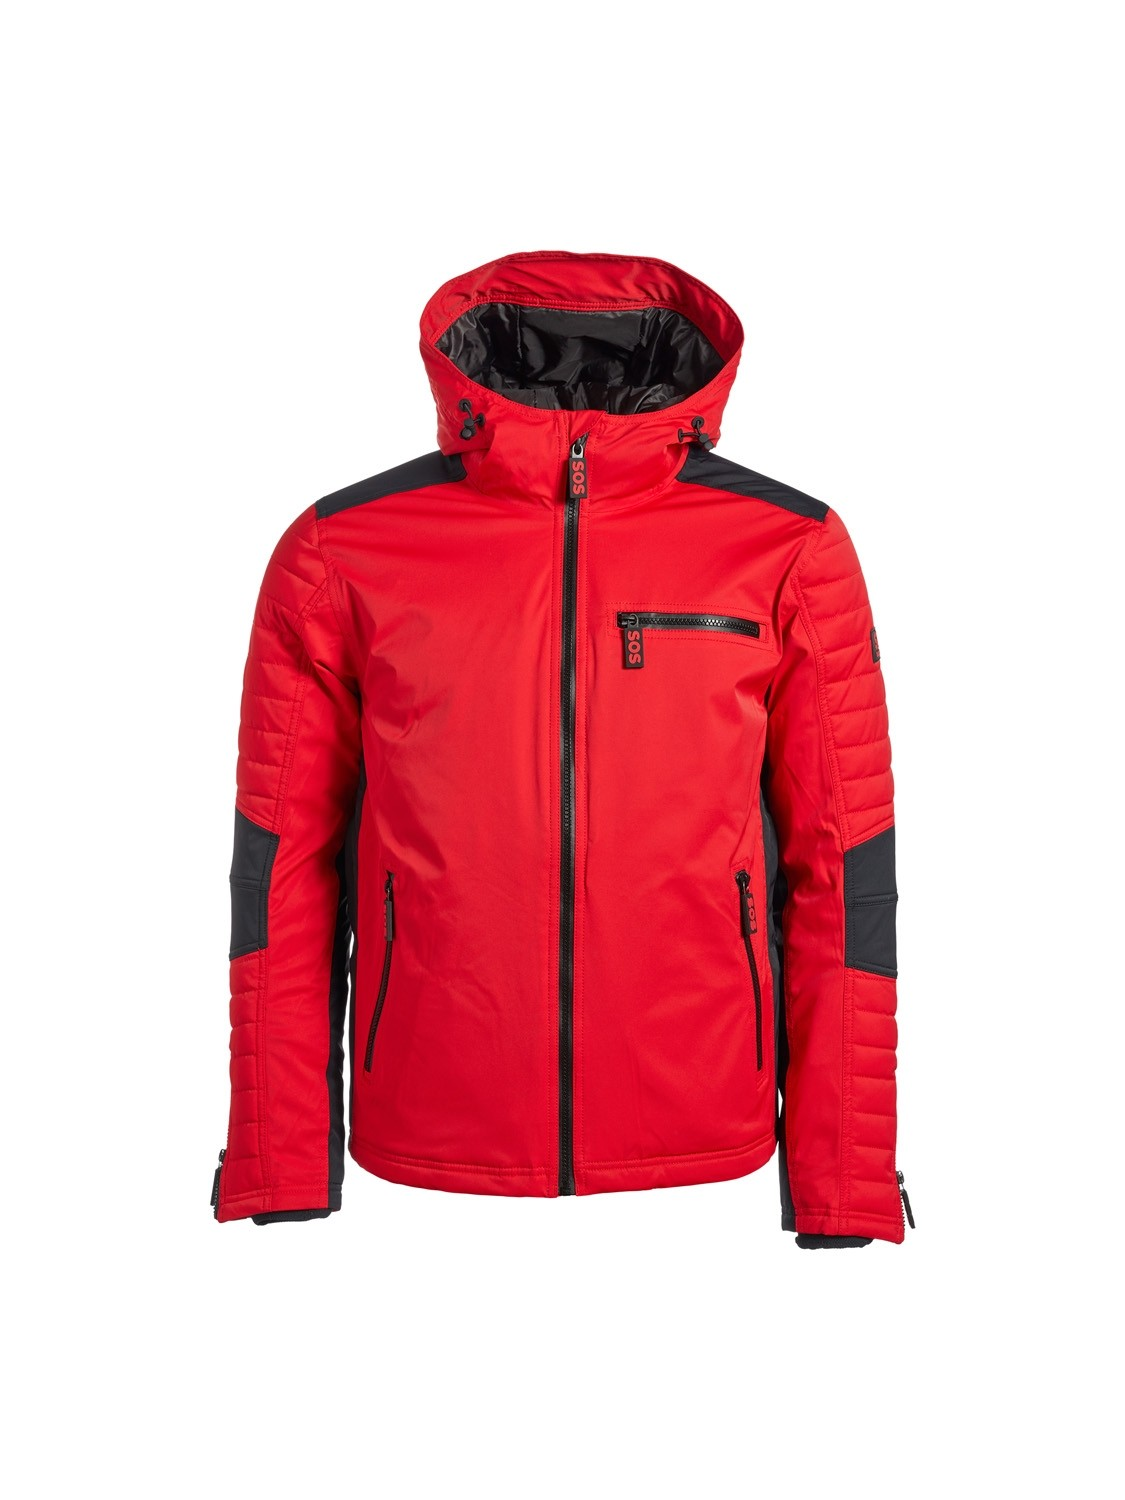 SOS Sportswear of Sweden Herren Skijacke Dominator Jacket Racing Red